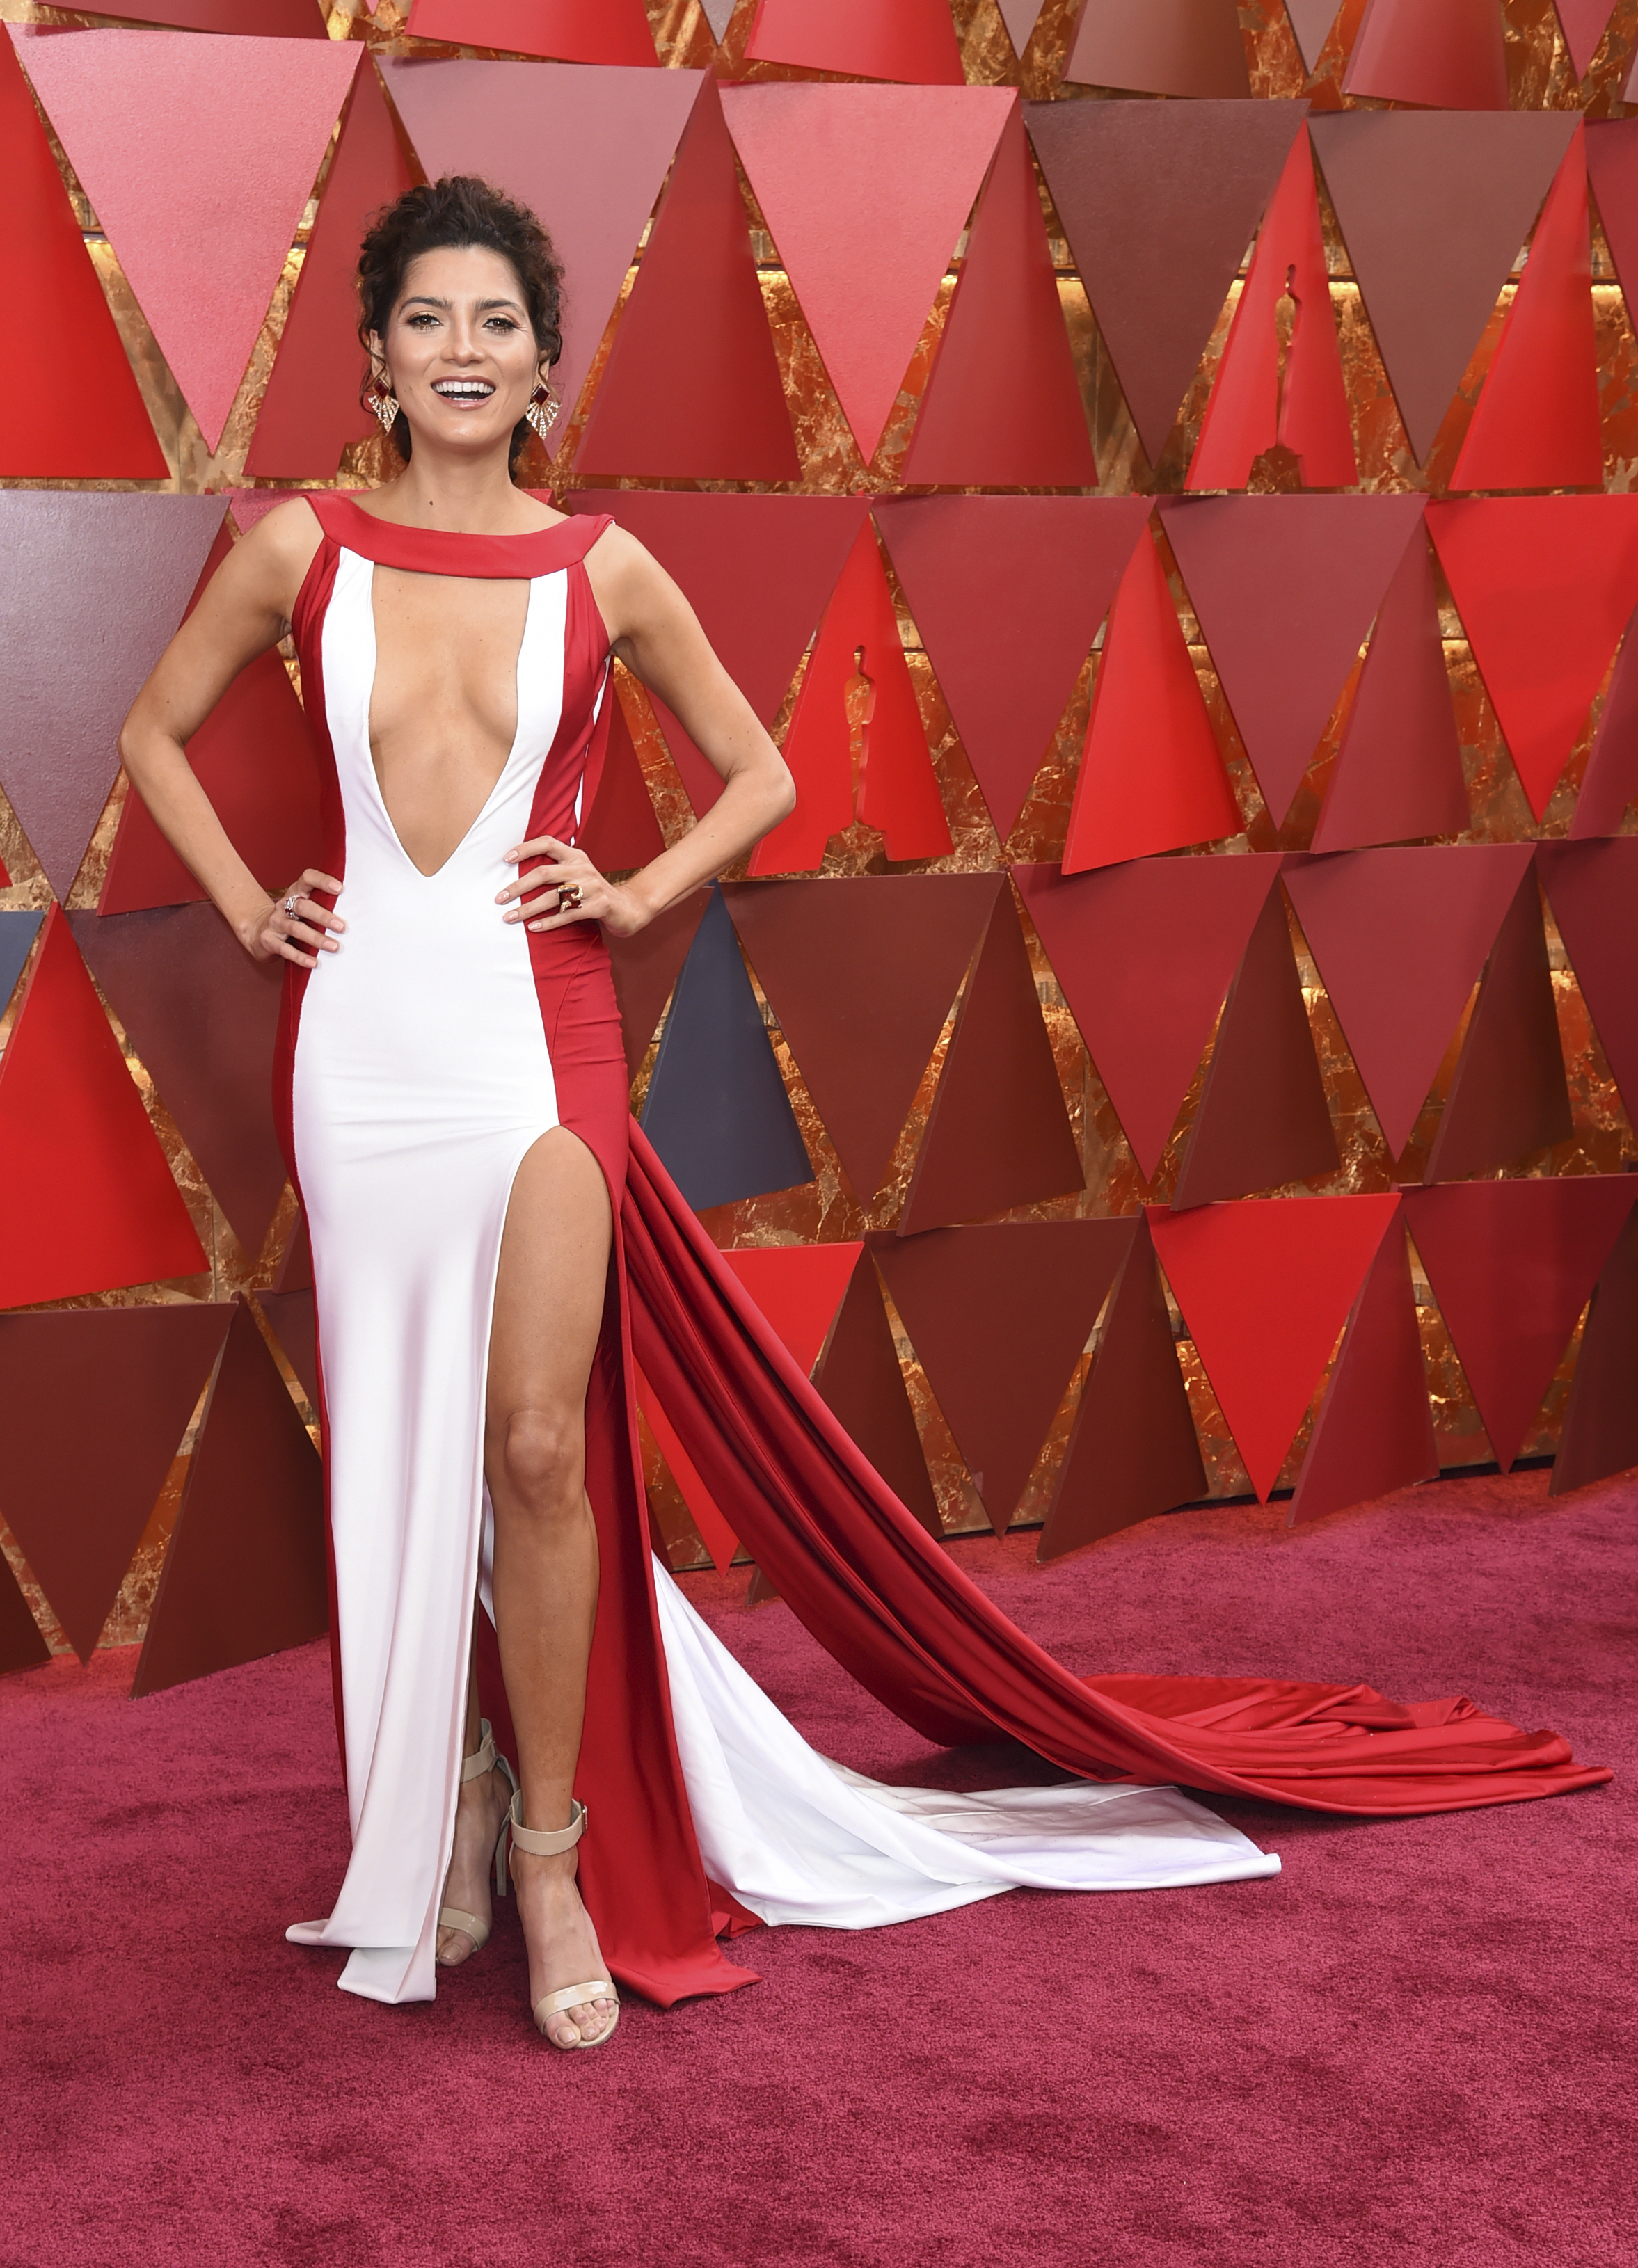 <div class='meta'><div class='origin-logo' data-origin='none'></div><span class='caption-text' data-credit='Richard Shotwell/Invision/AP'>Blanca Blanco arrives at the Oscars on Sunday, March 4, 2018, at the Dolby Theatre in Los Angeles.</span></div>